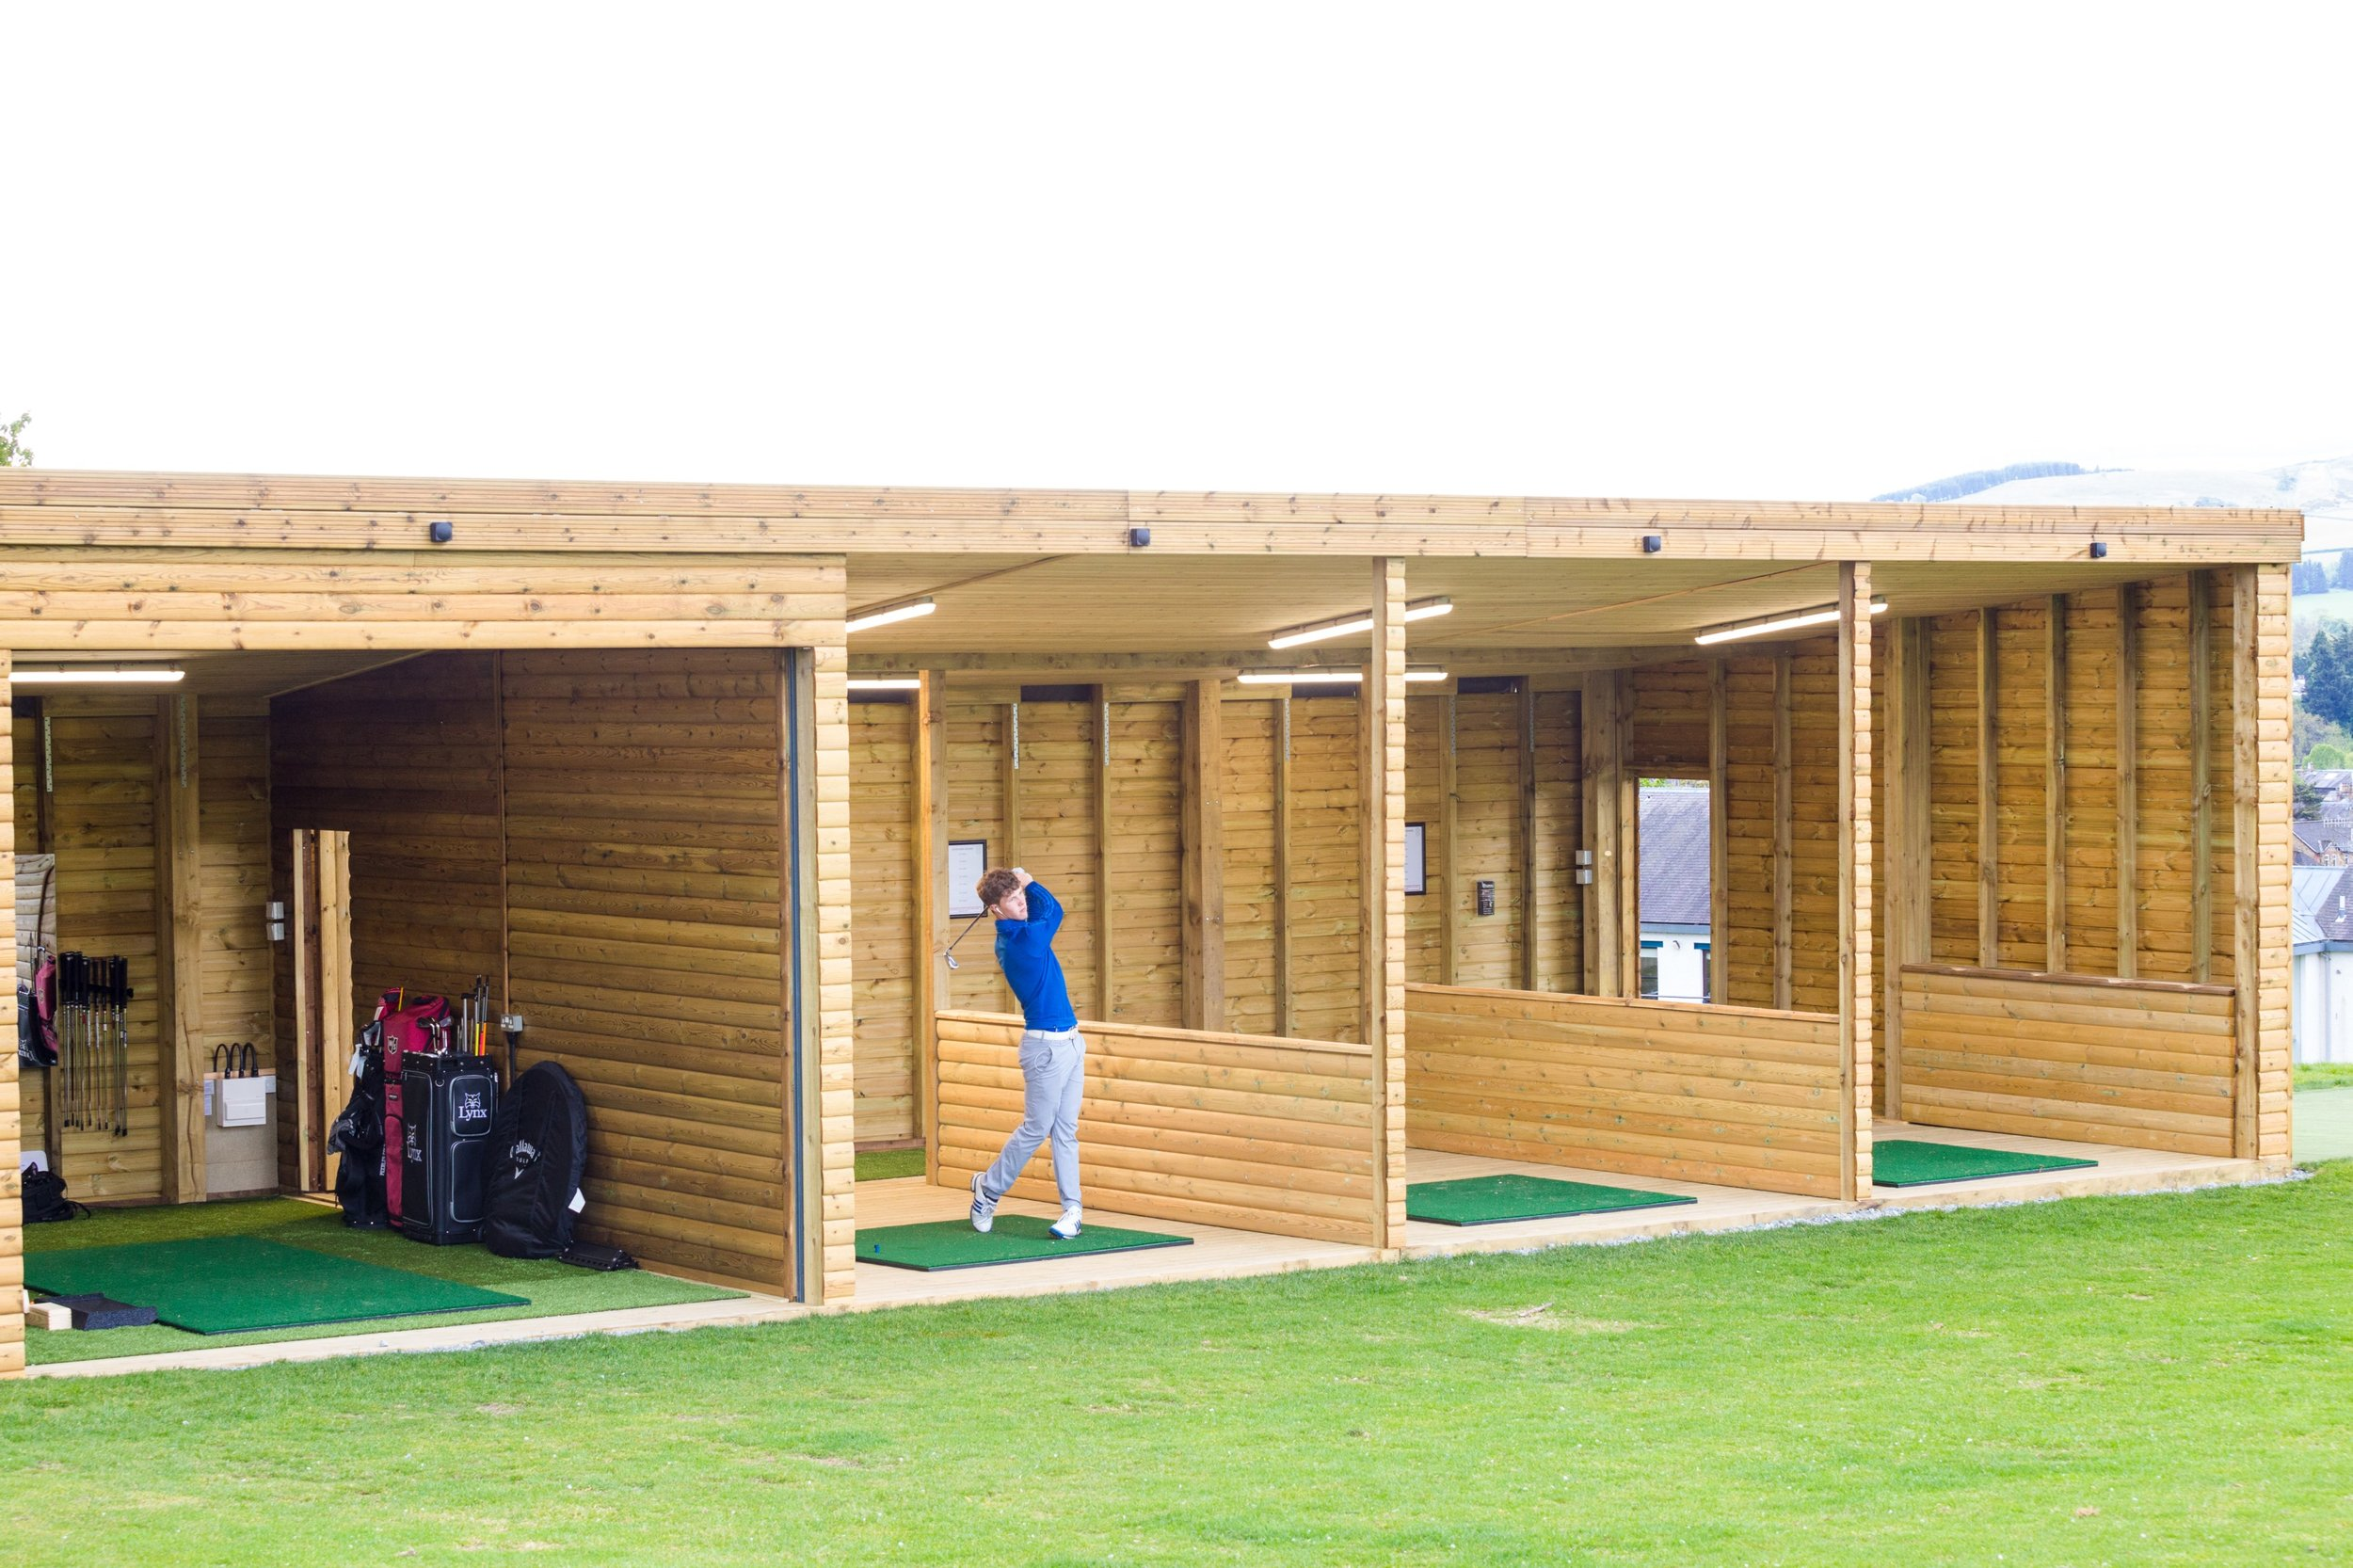 The new driving range features a swing studio, 3 additional indoor bays and 2 outdoor bays